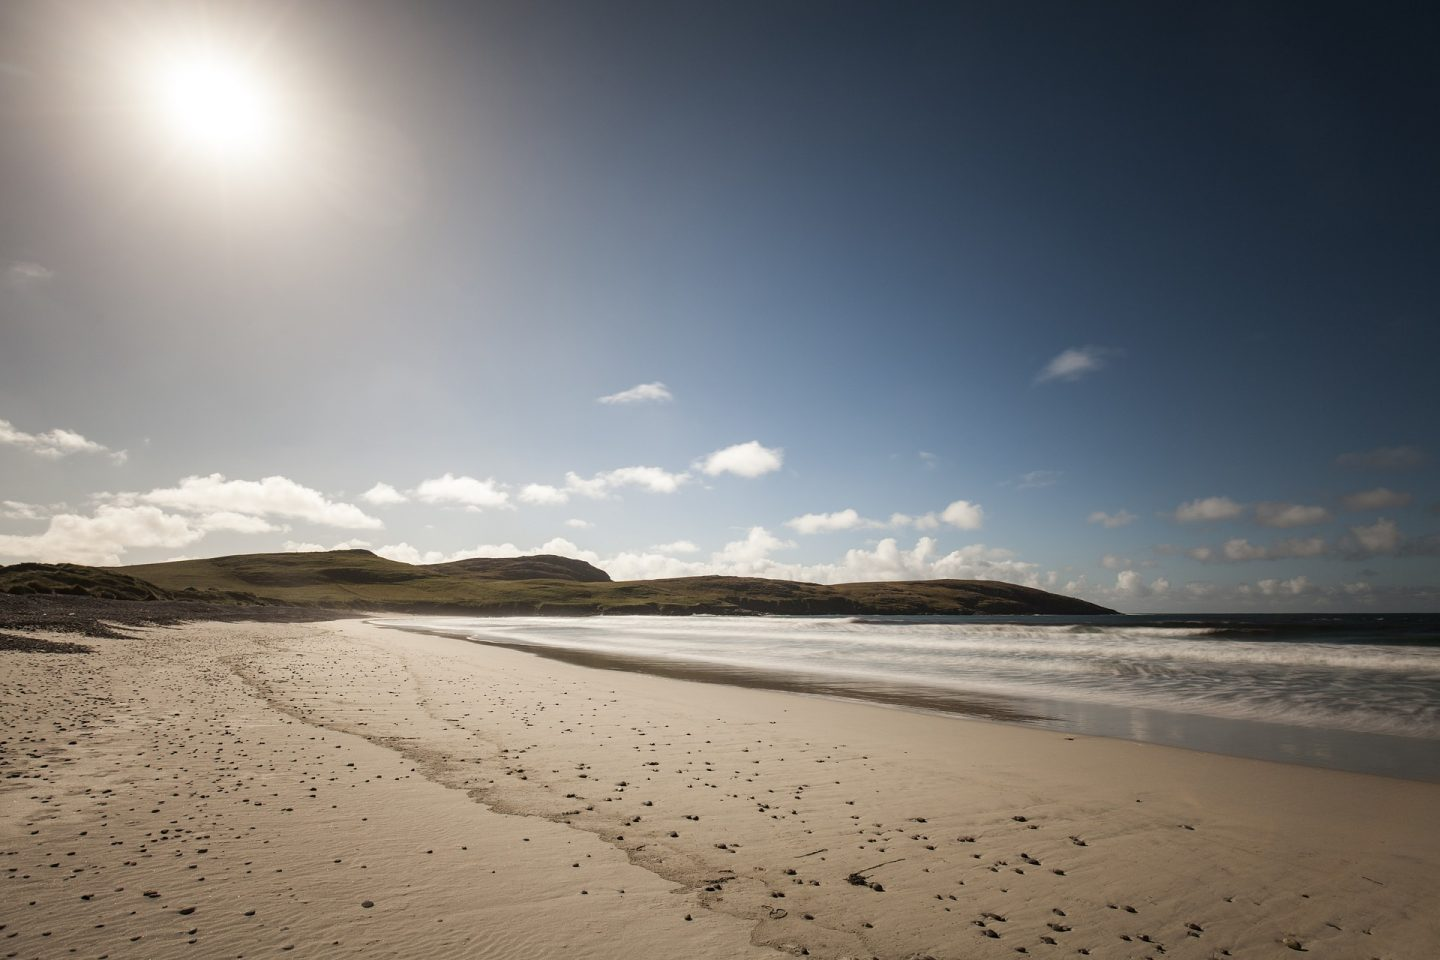 vatersay world's 50 best beaches palm trees fantasy beach summer travel